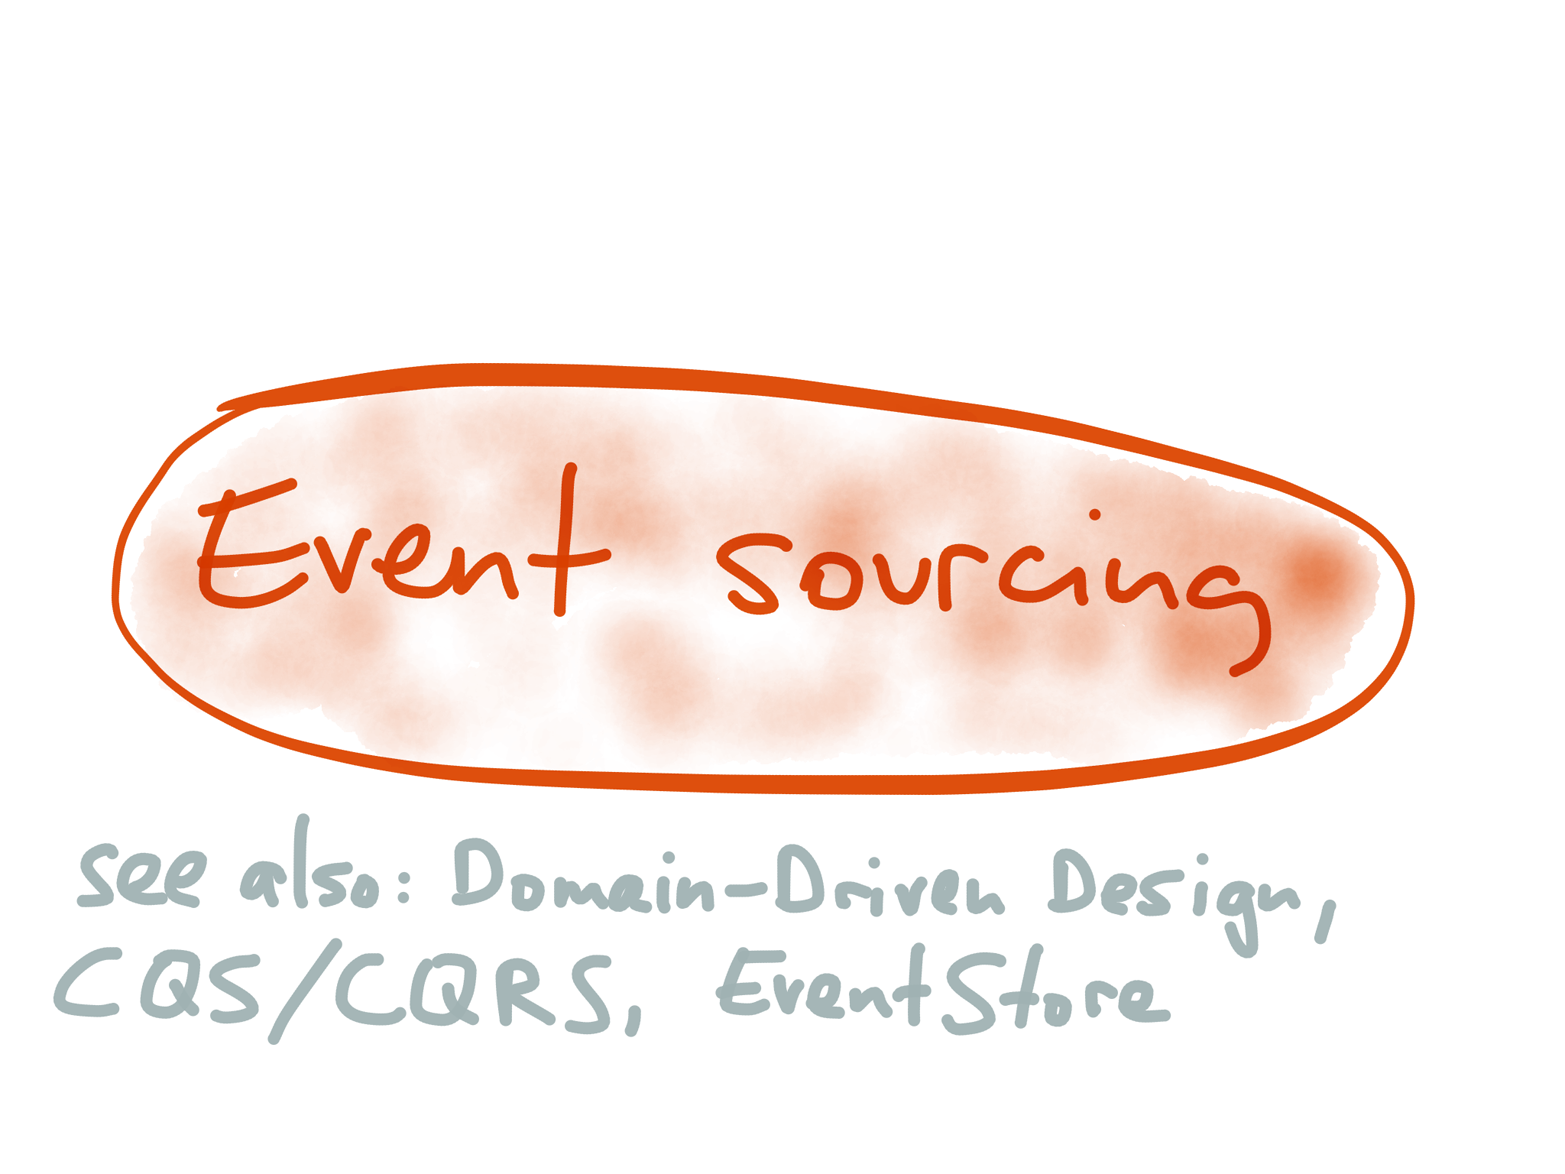 Event sourcing is an idea from the DDD community.